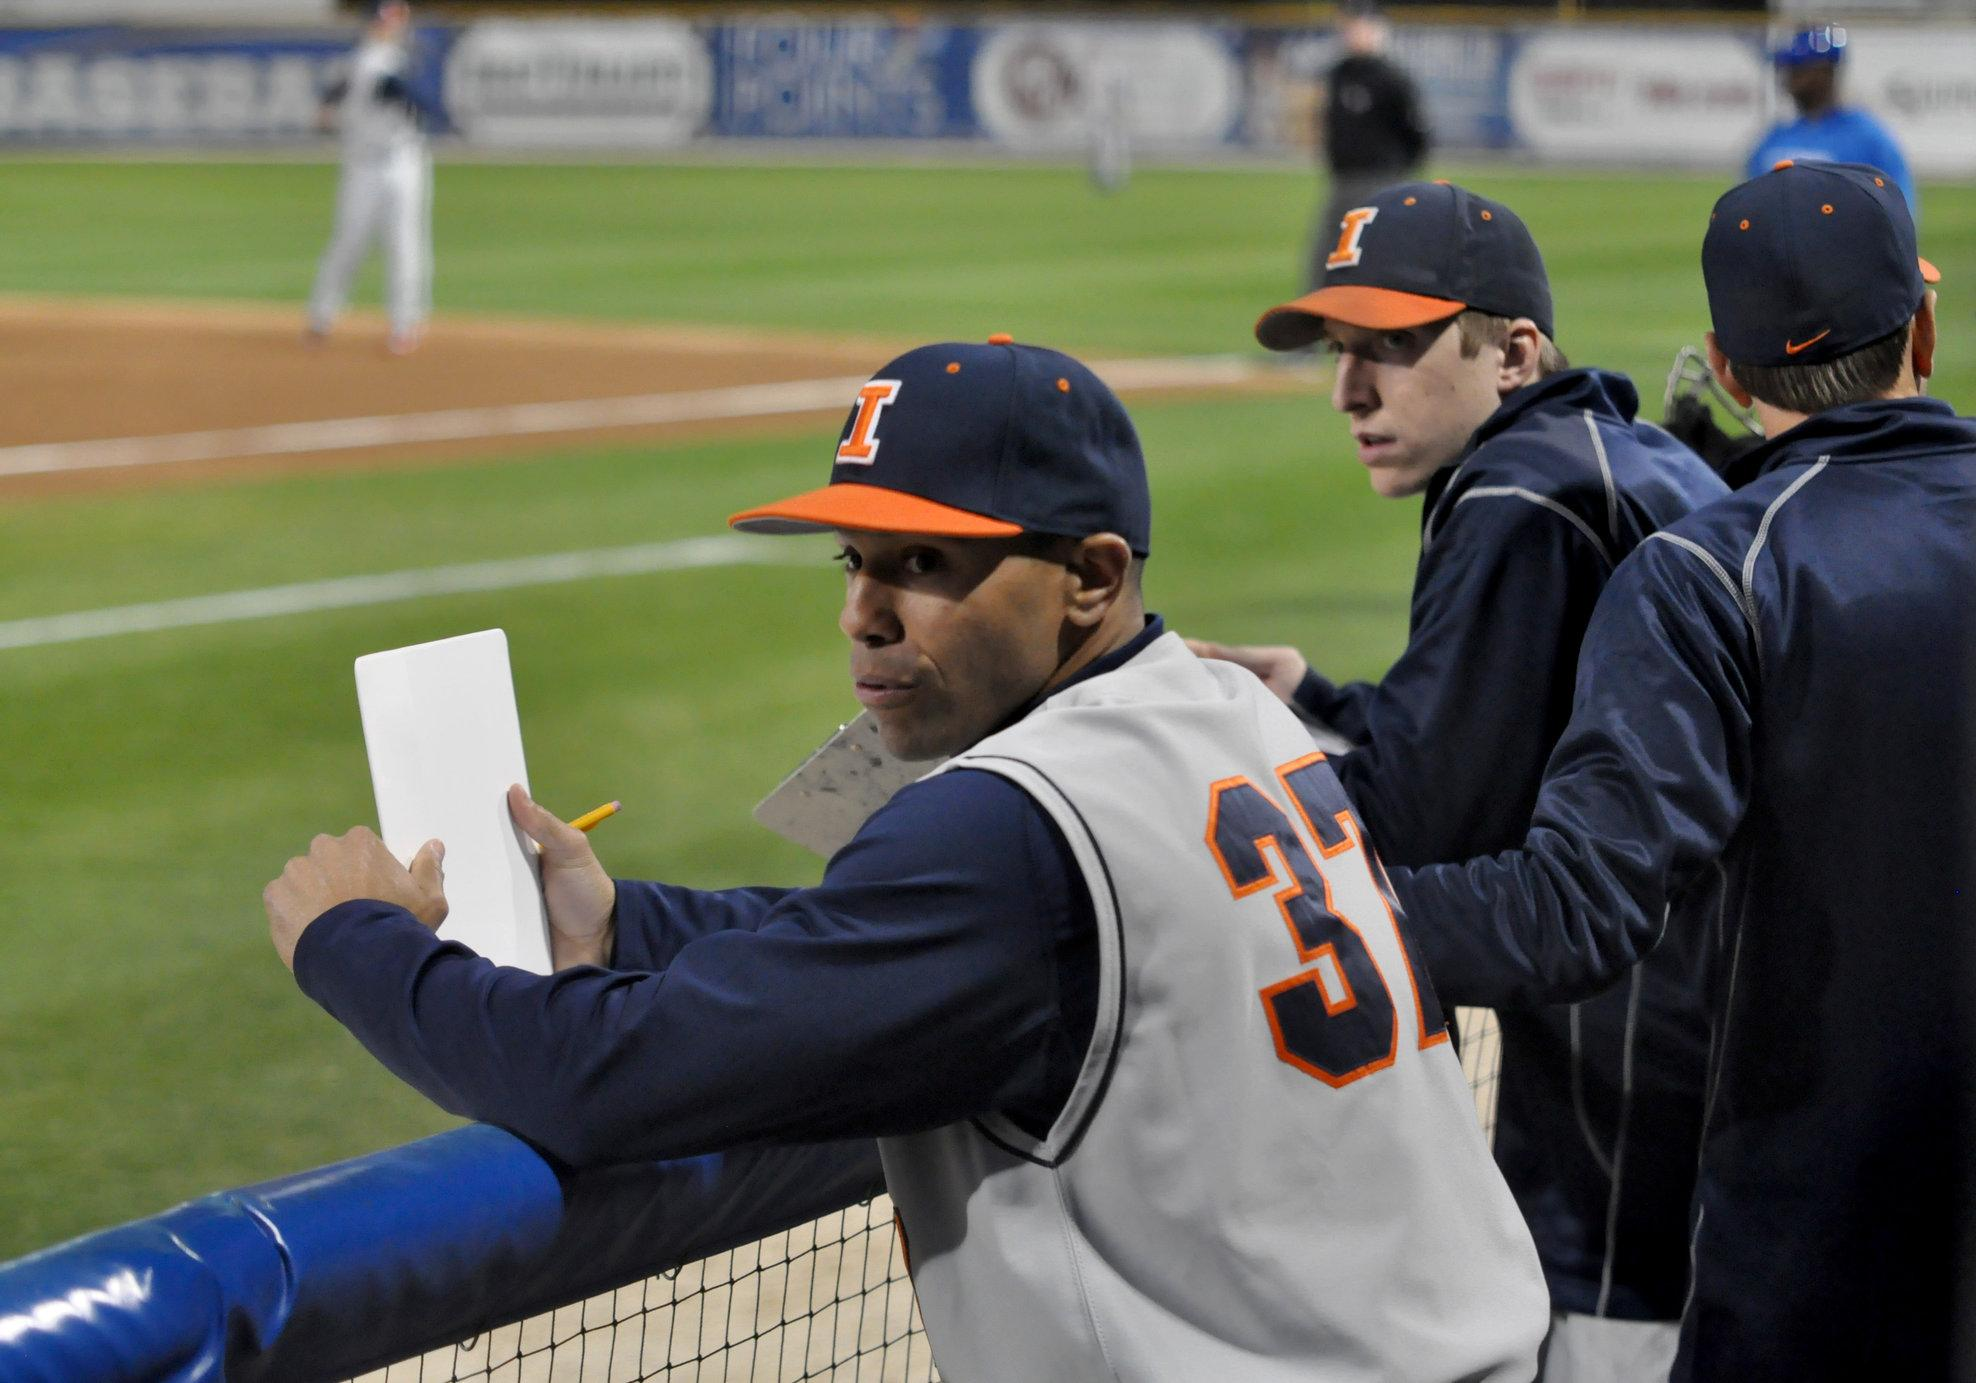 New Northwestern baseball coach Spencer Allen was an assistant at Illinois in 2014. Allen takes over for Paul Stevens, who spent 27 years as the Wildcats' head coach.